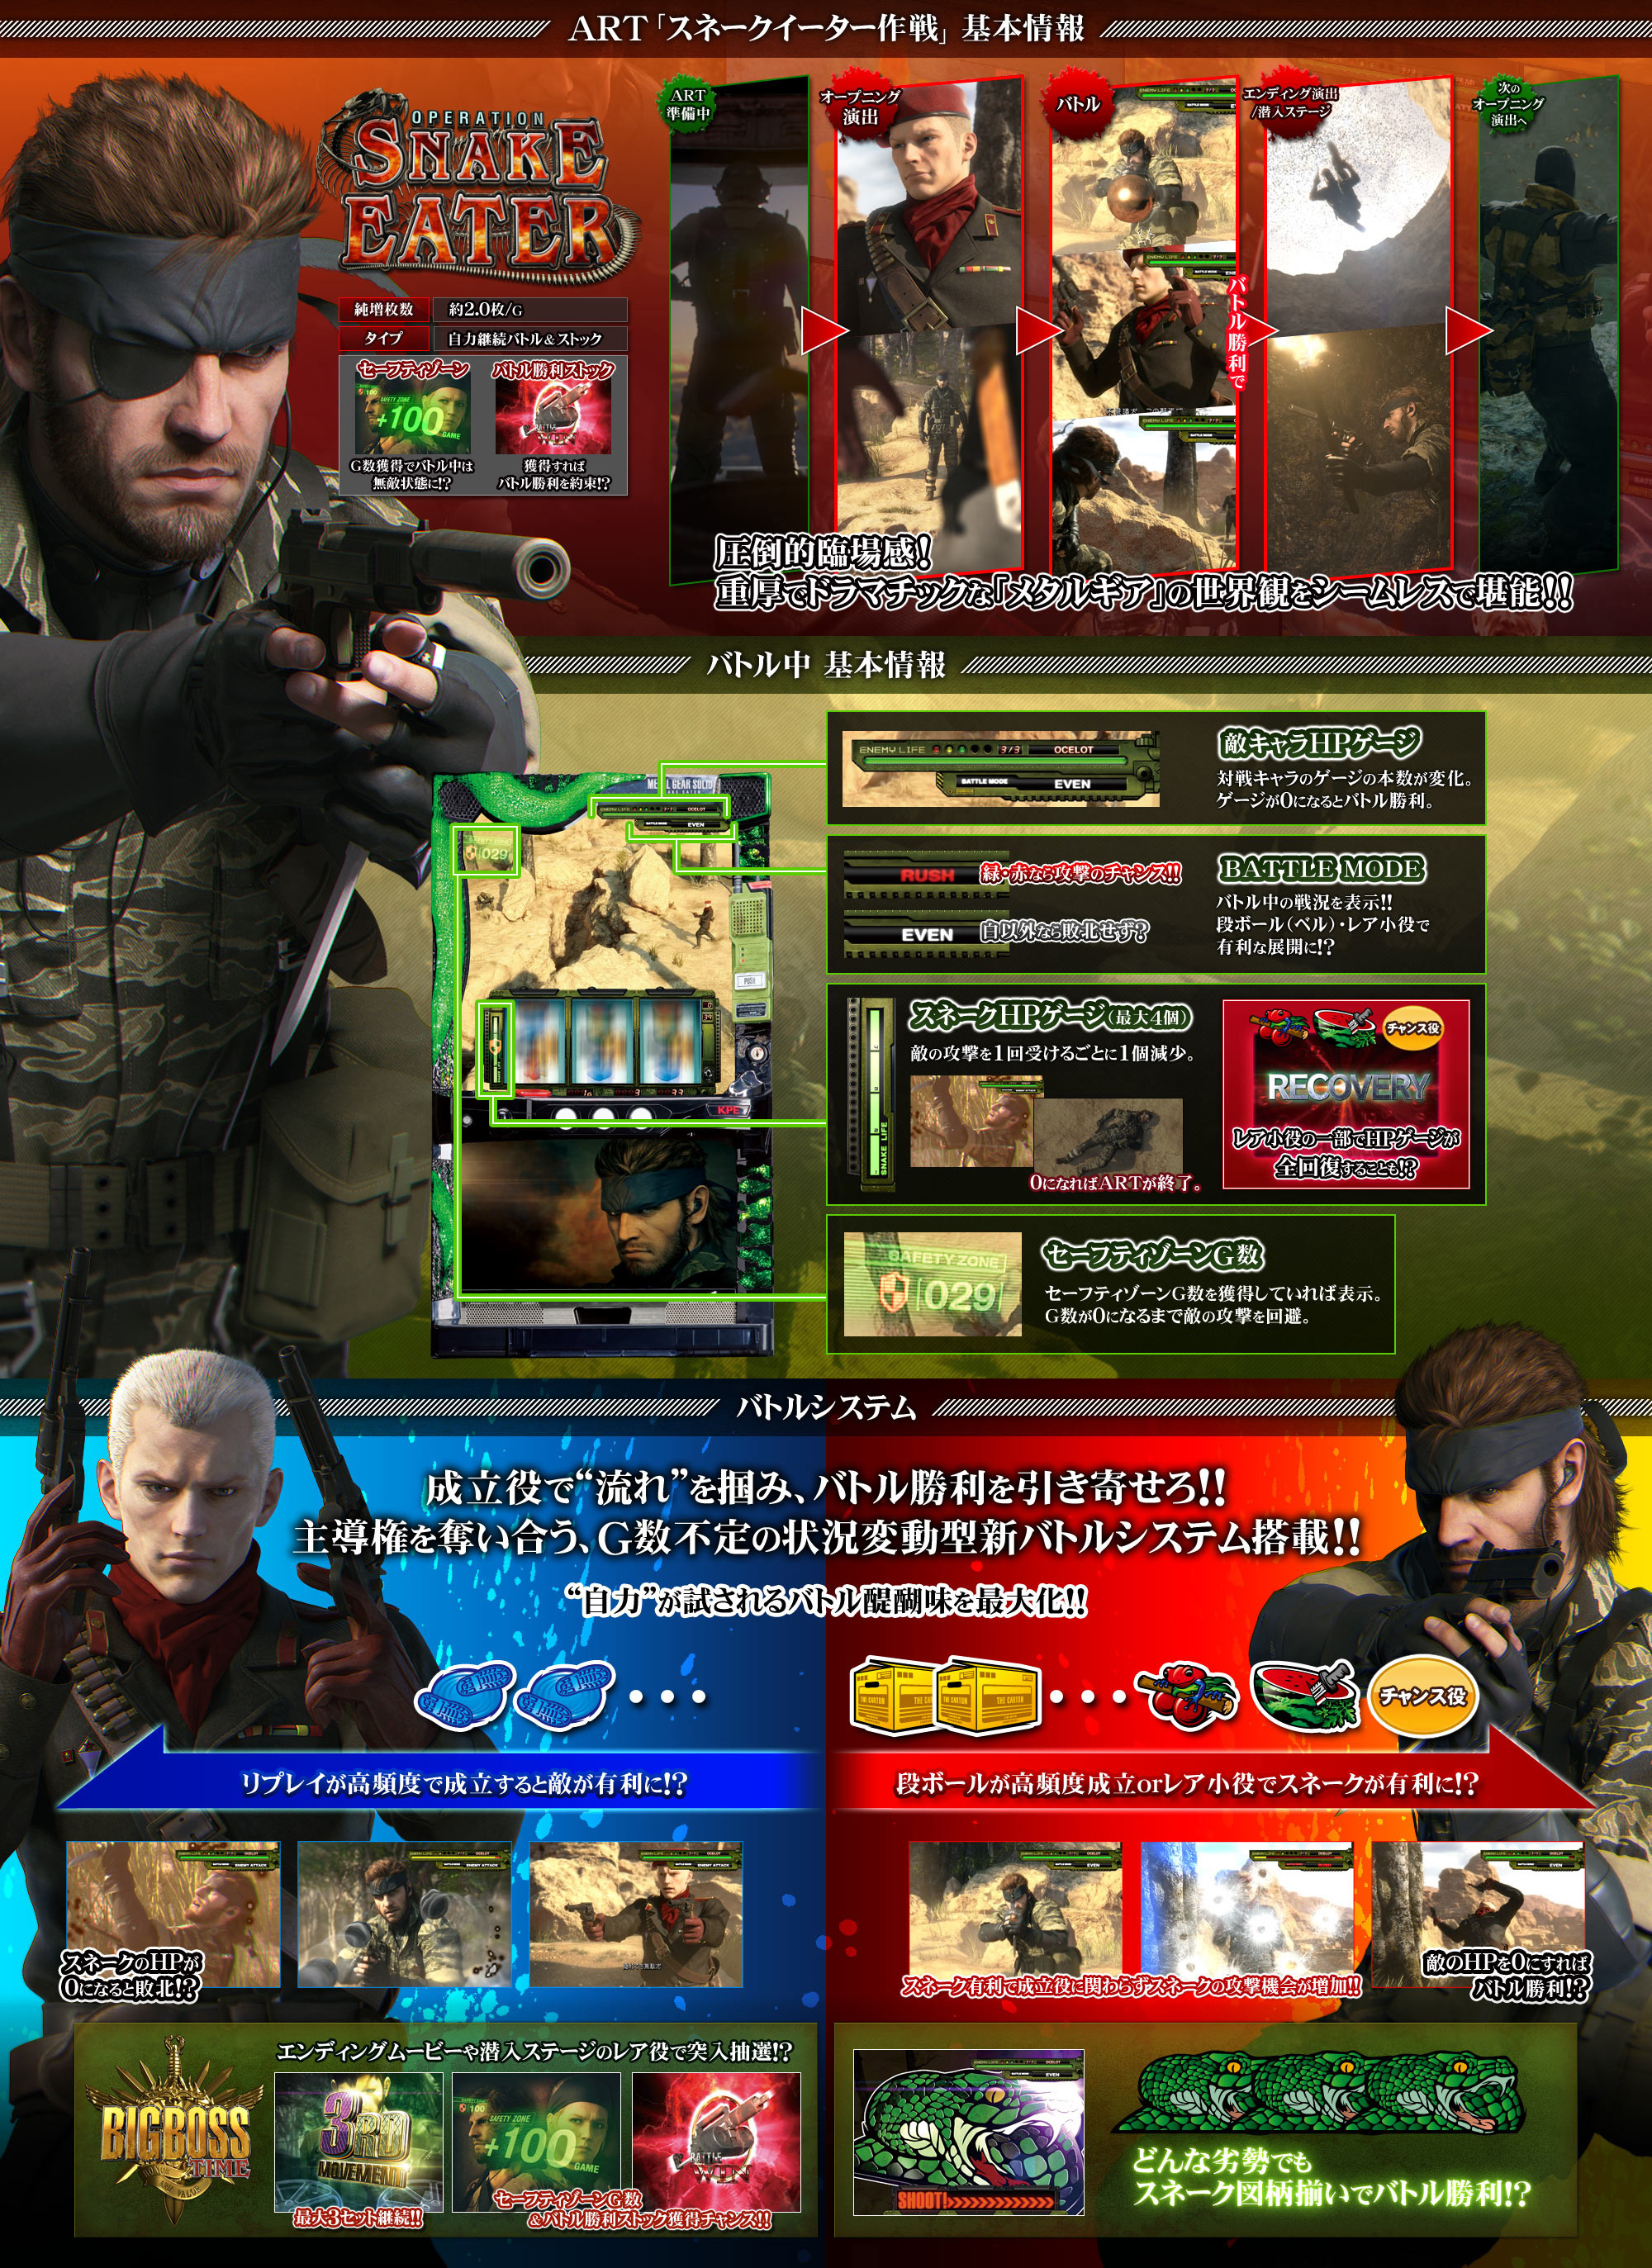 Metal-Gear-Solid-Snake-Eater-Website-Art